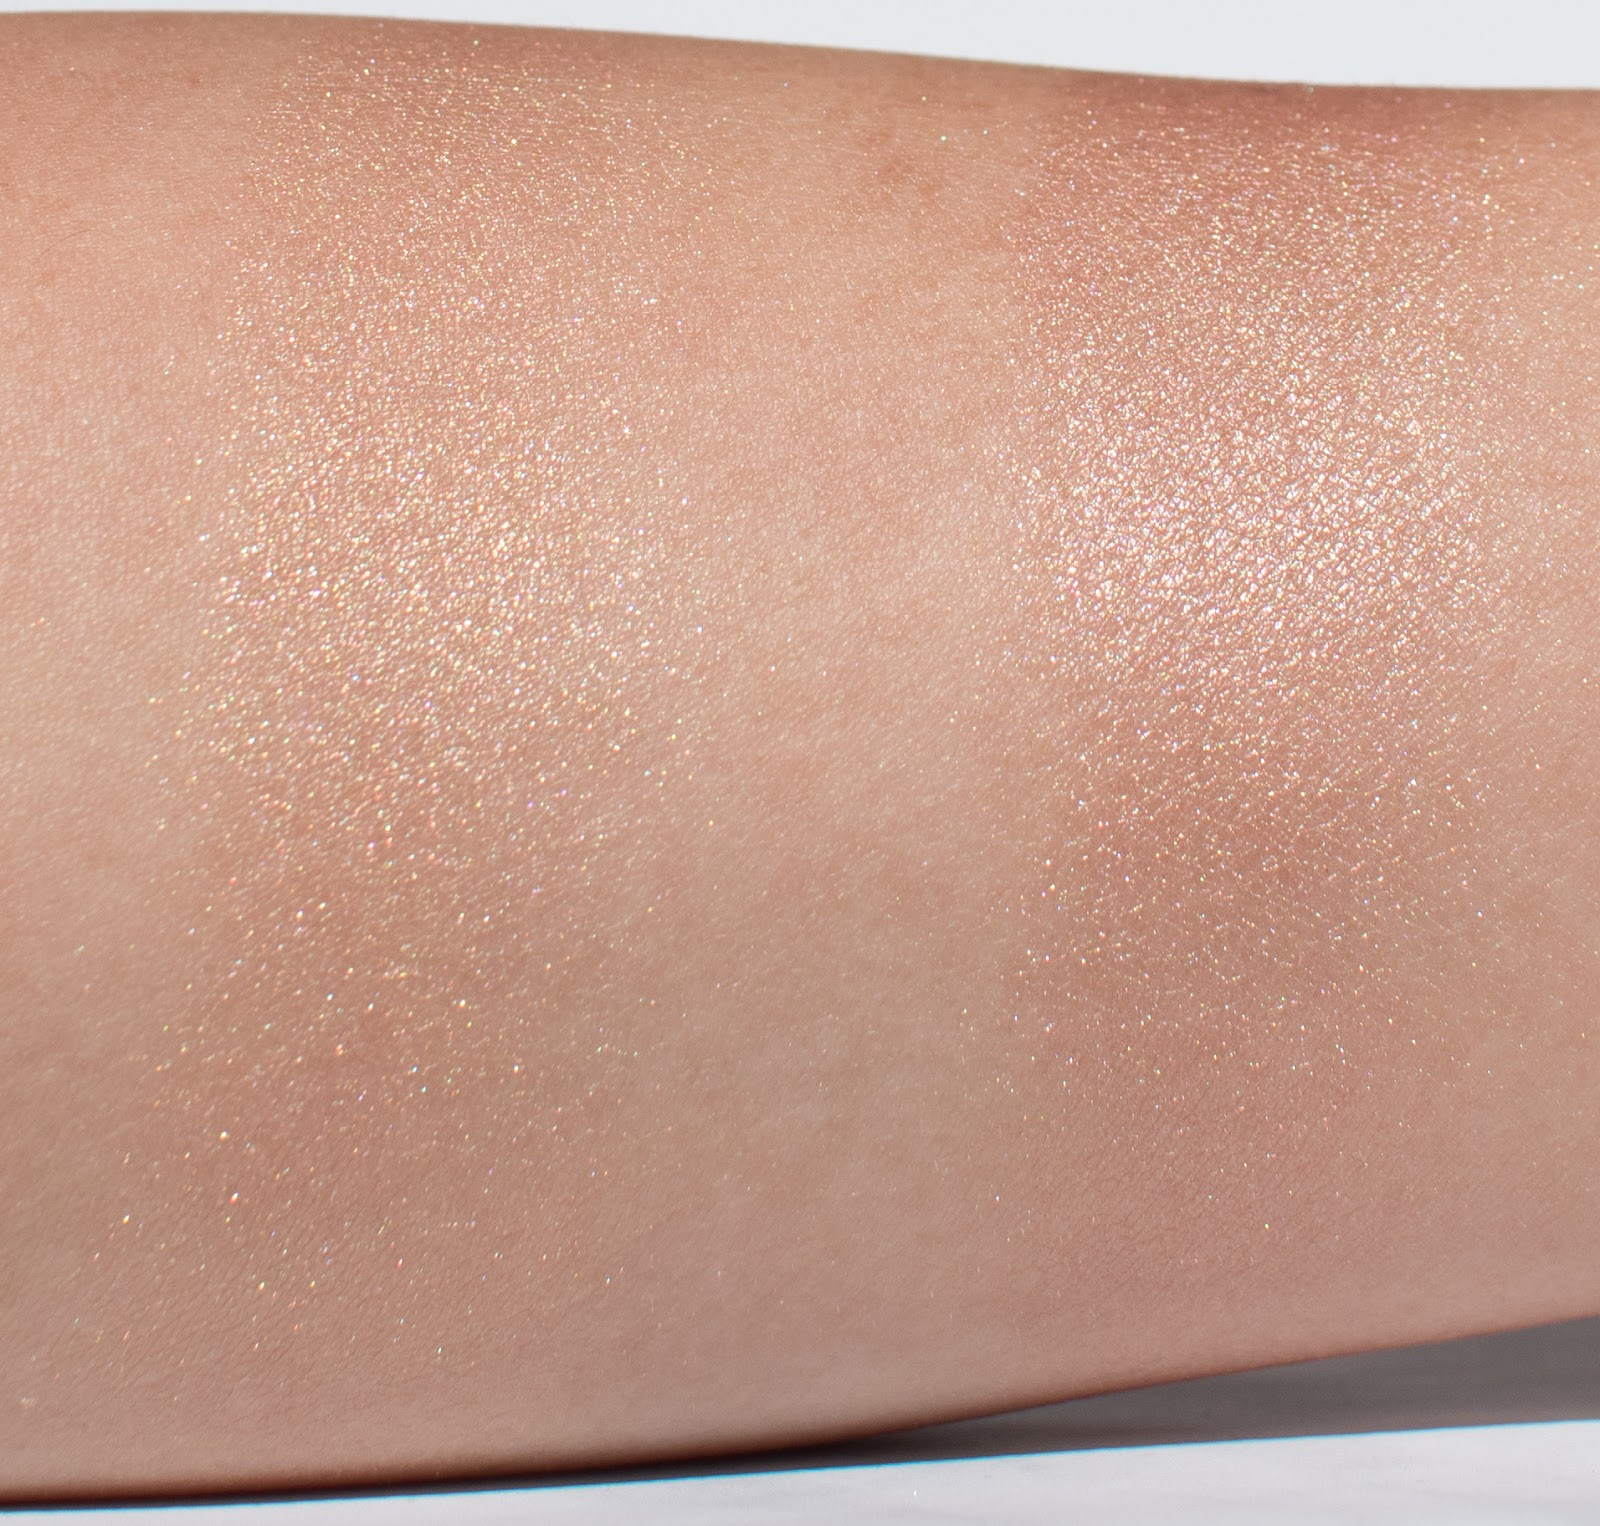 Becca Shimmering Skin Perfector Pressed Highlighter in Opal Swatch